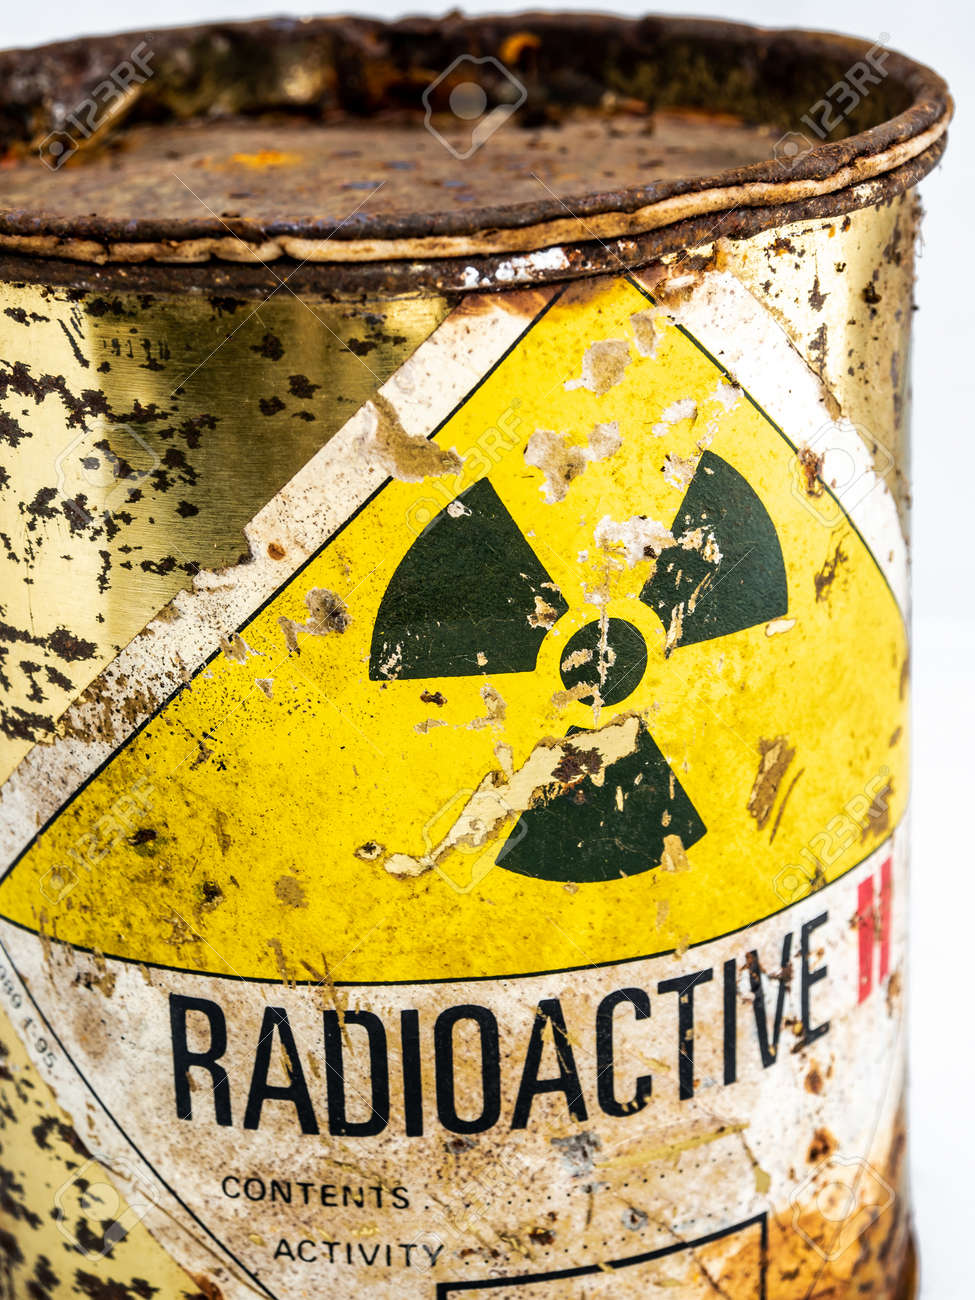 Radiation warning sign on transport index label stick on the rust and decay radioactive material container, Ionizing radiation hazard symbol as background - 167262684